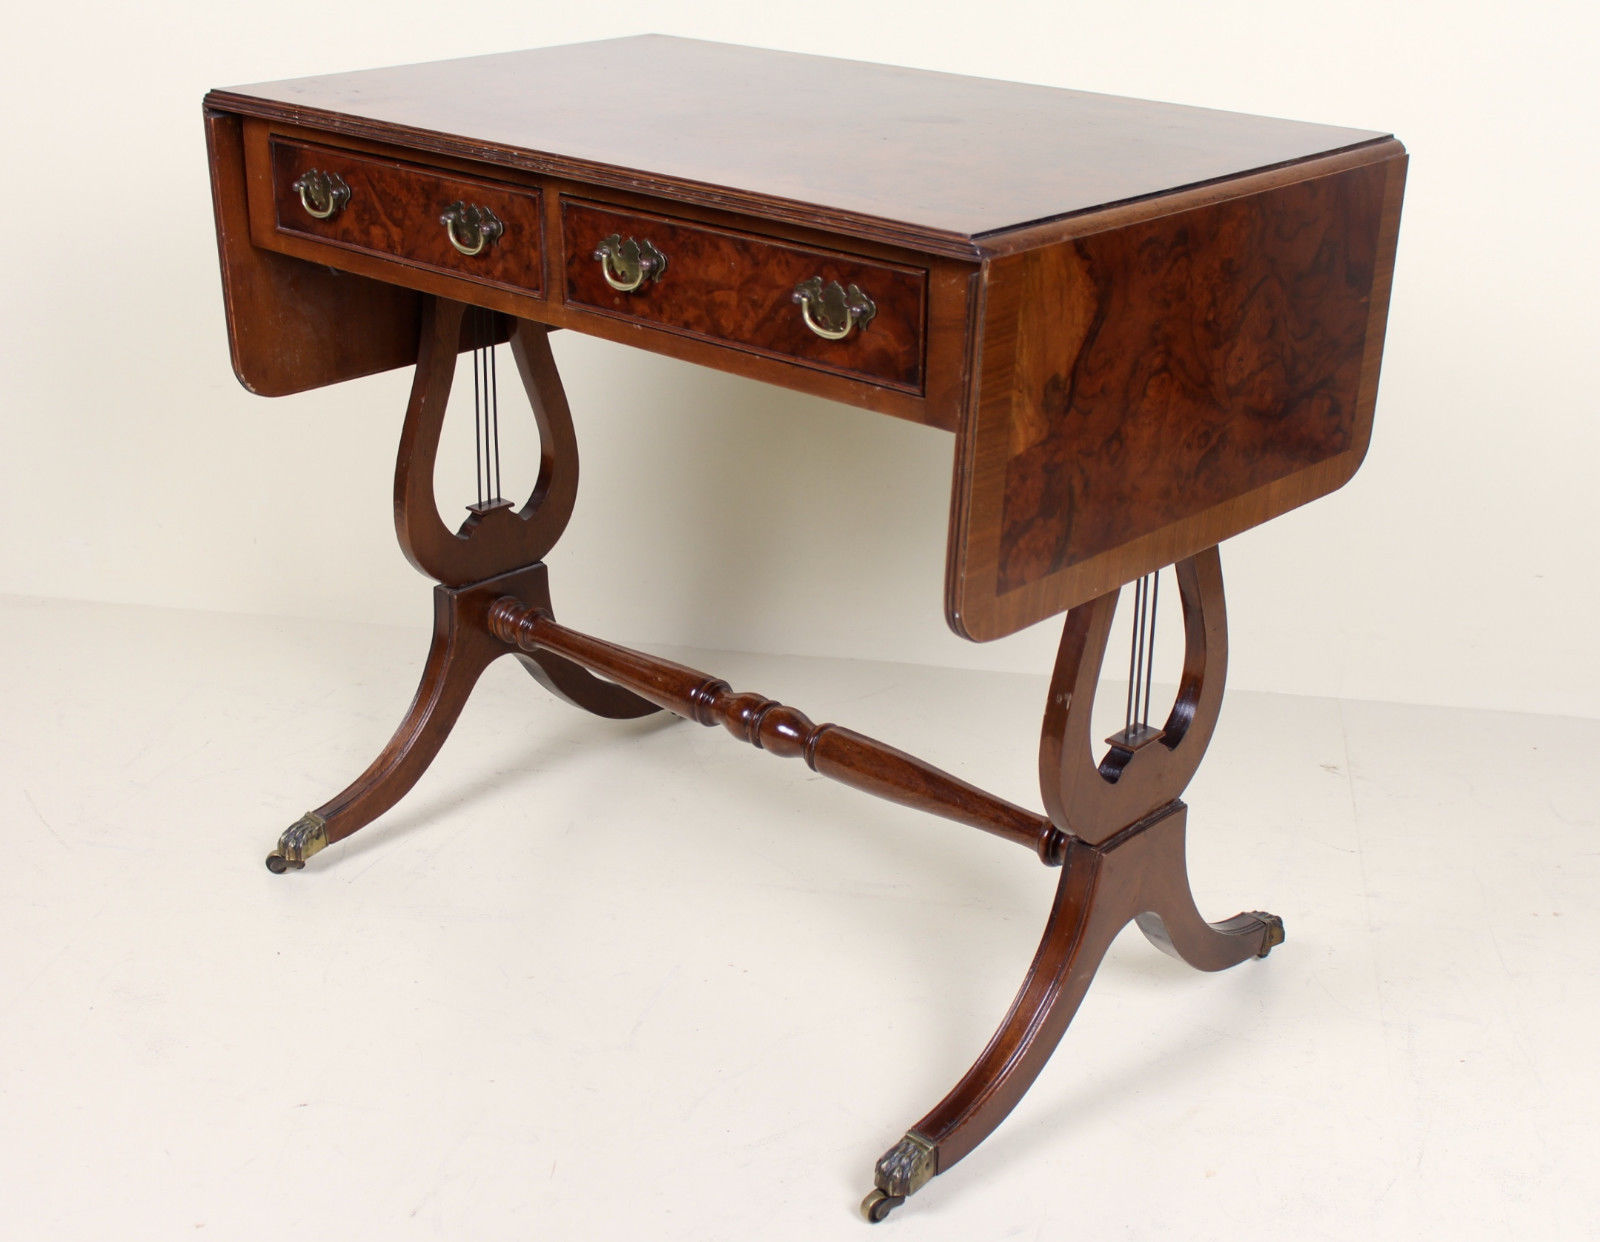 Brilliant Antique Vintage Walnut Sofa Table Drop Leaf Folding Console Table Ncnpc Chair Design For Home Ncnpcorg